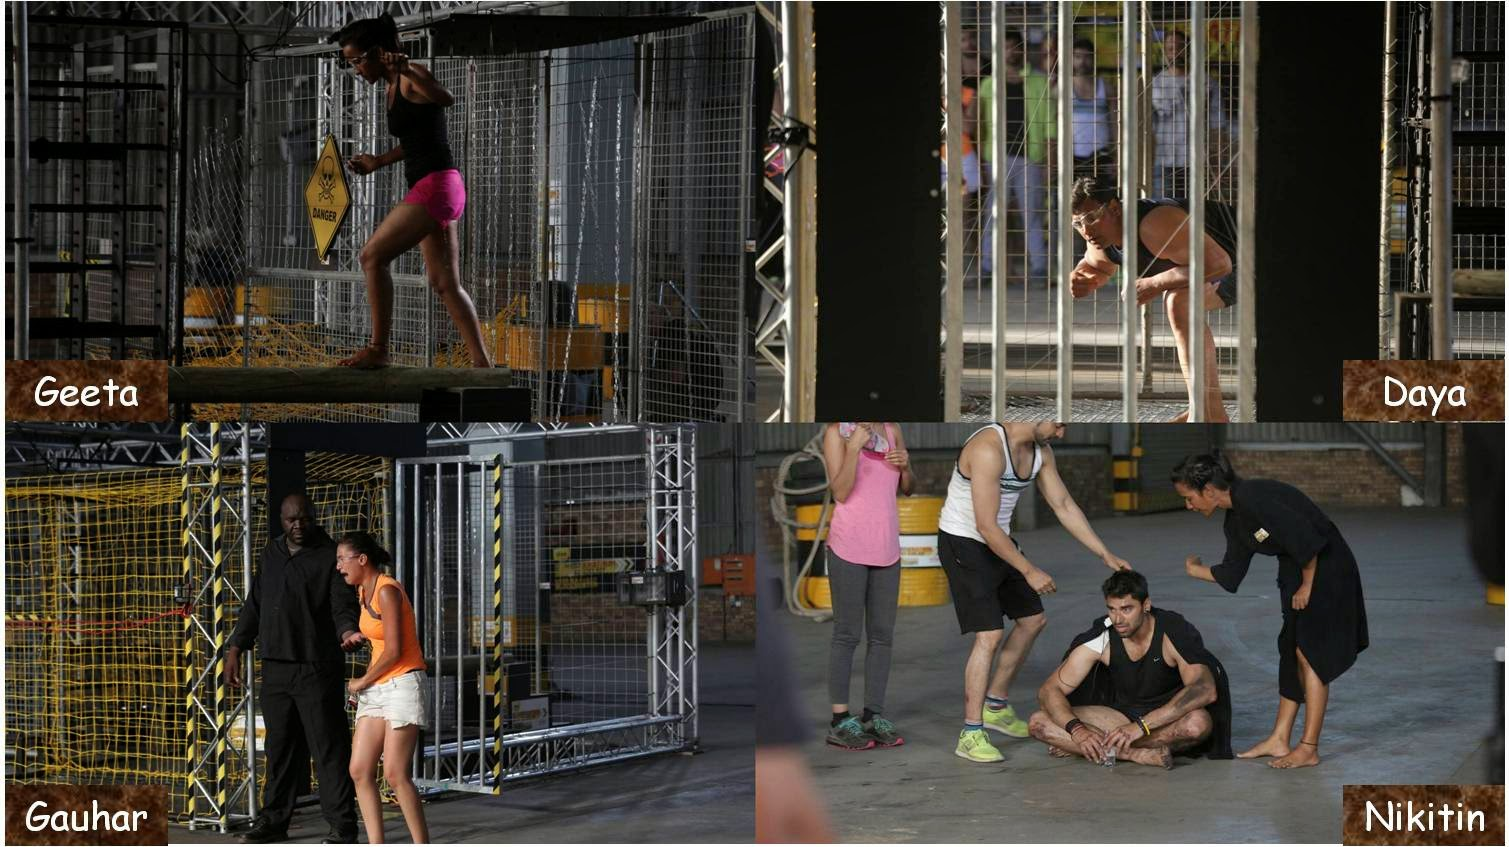 Khatron Ke Khiladi contestants Geeta, Daya, Gauhar and Nikitin during and after electric Shock Therapy stunt